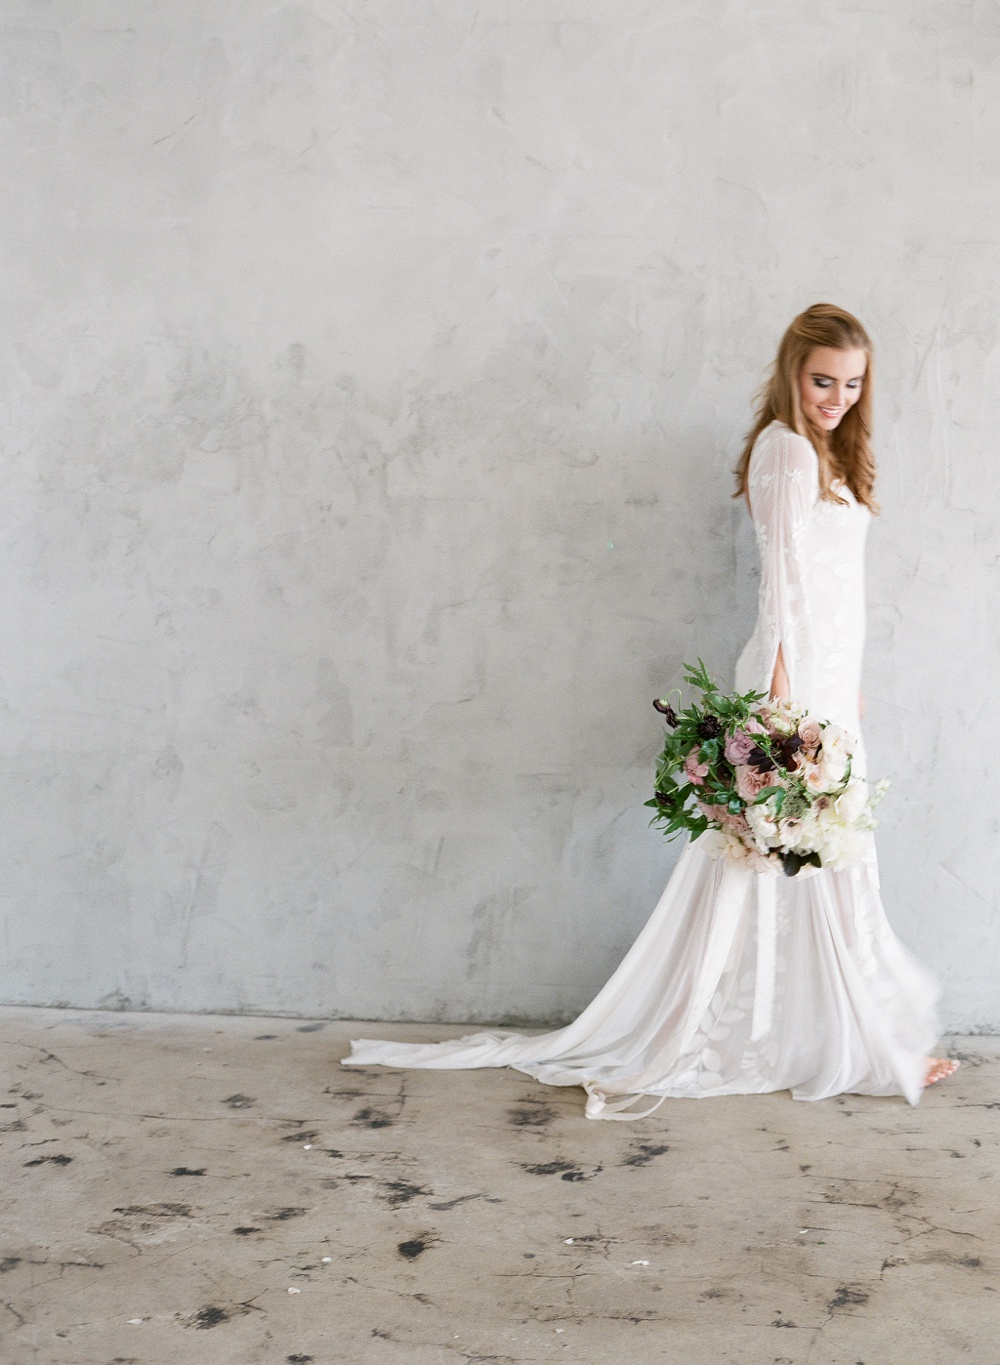 www.santabarbarawedding.com | Kristen Beinke | Jill & Co | Bride